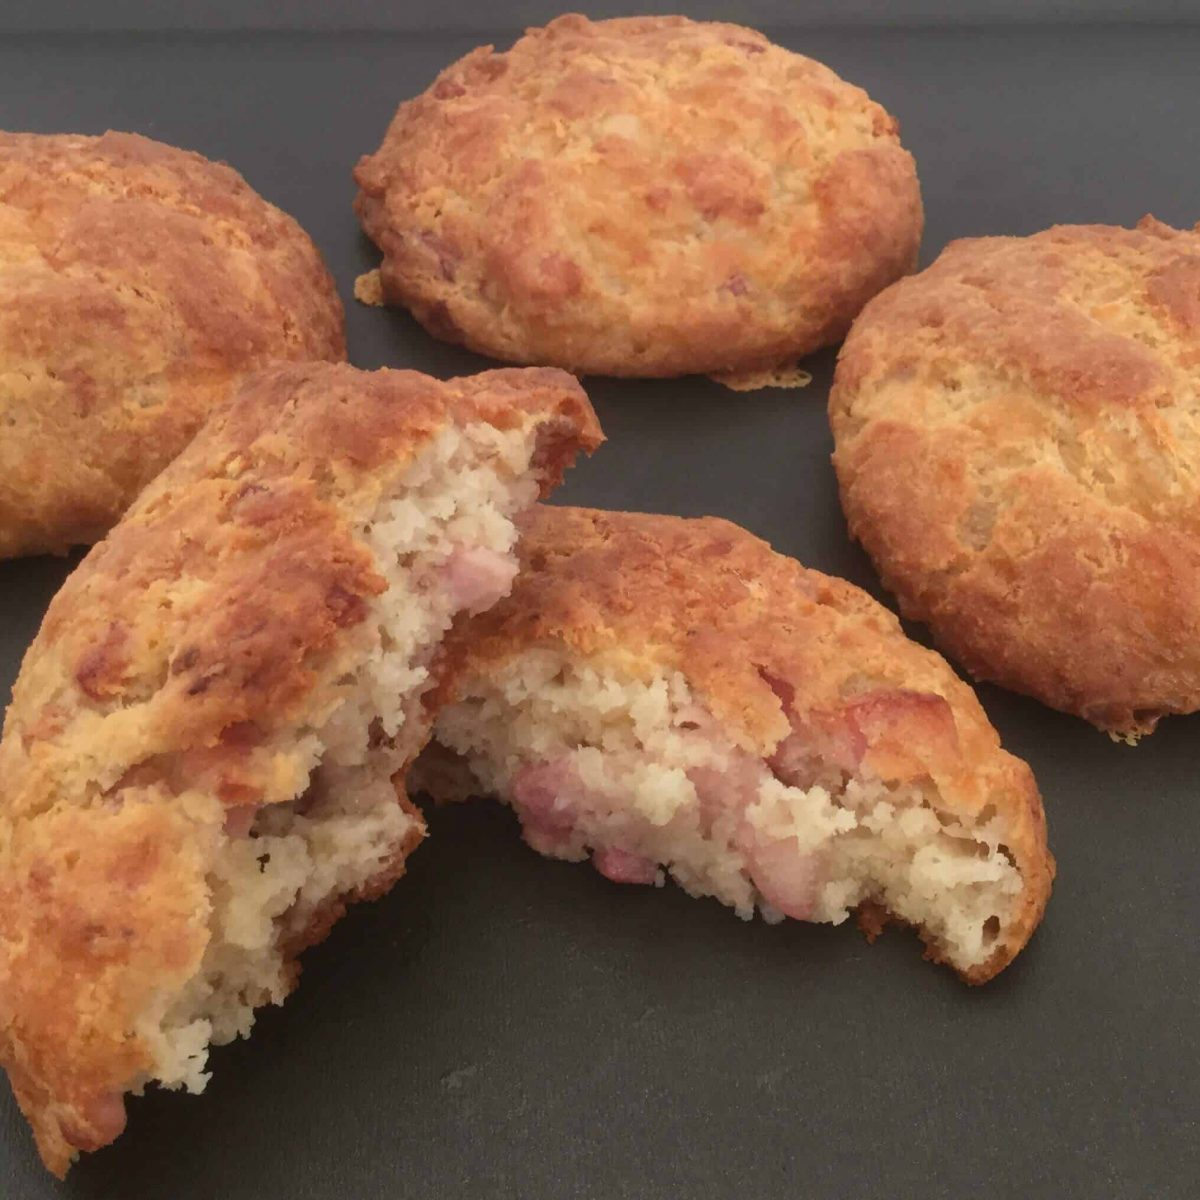 4 bacon and cheese biscuits